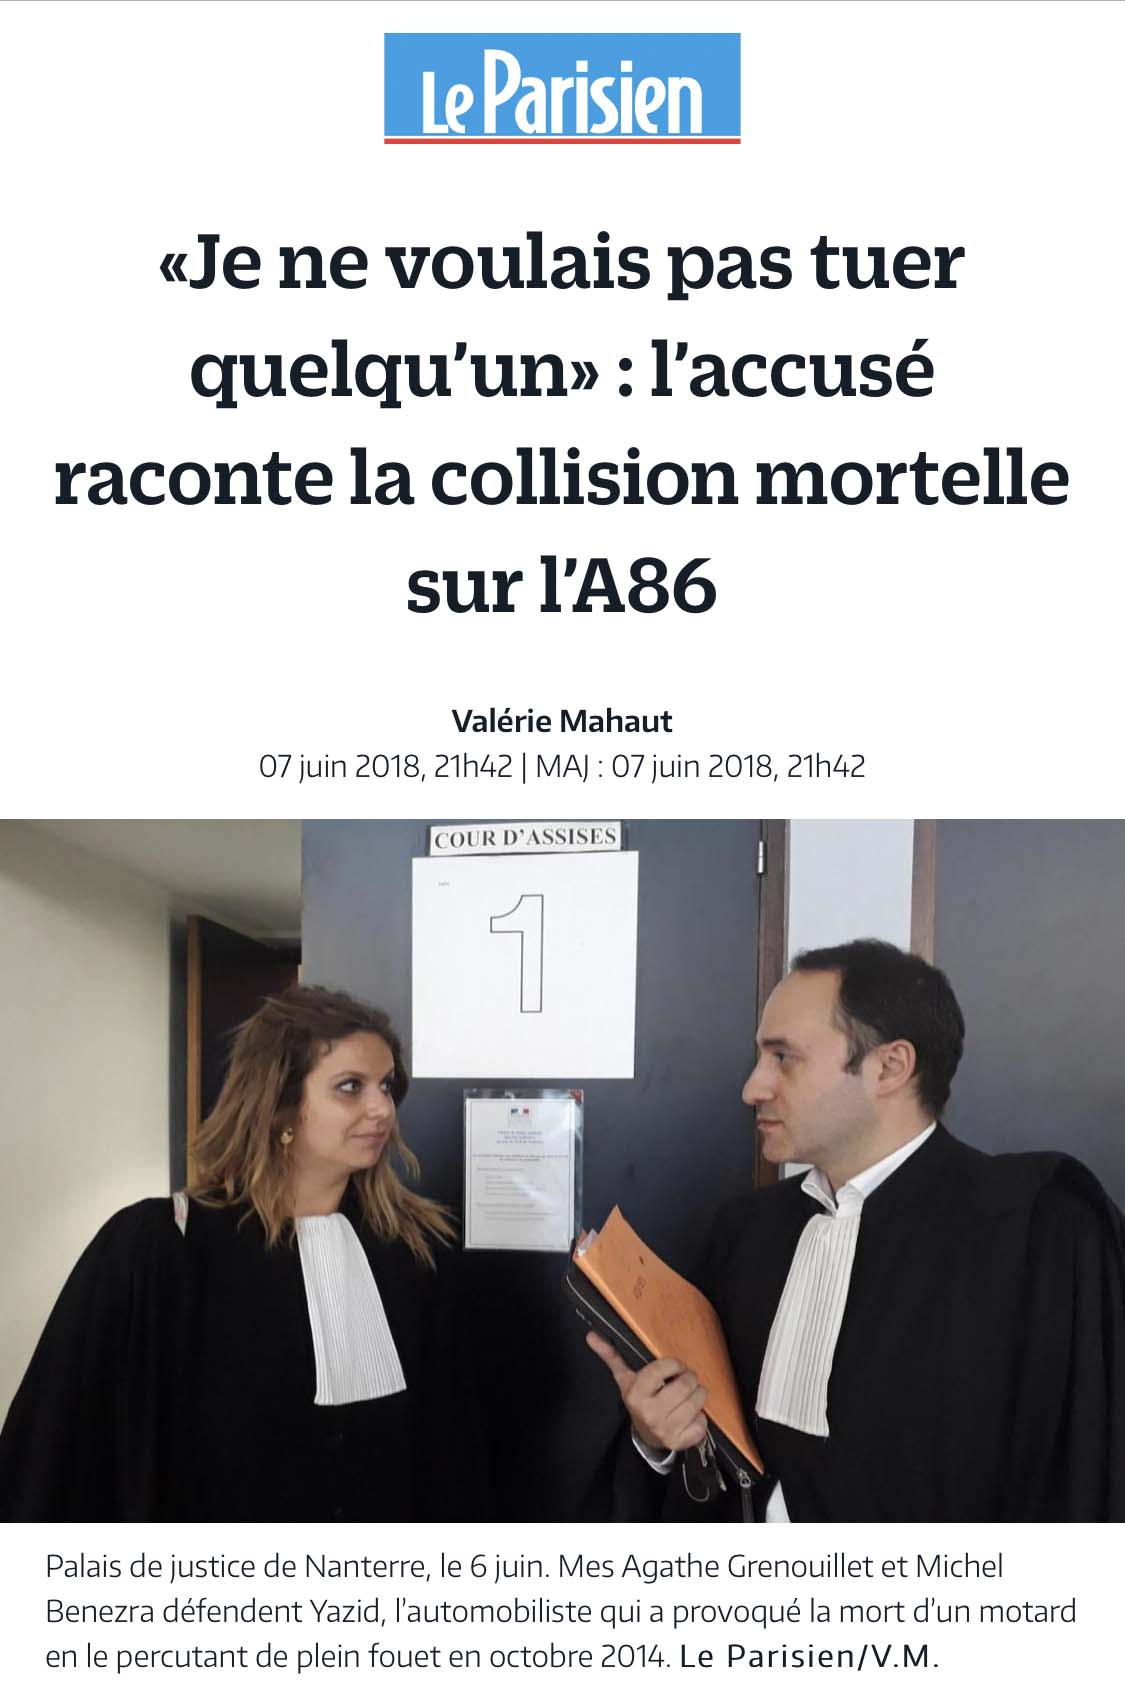 violences volontaires ayant entrainé la mort sans intention de la donner, avocat assises, avocat spécialisé cour d'assises, avocat spécialiste cour d'assises, avocat expert pénal routier, avocat accident de la route, défense pénale accident, meilleur avocat accident routier